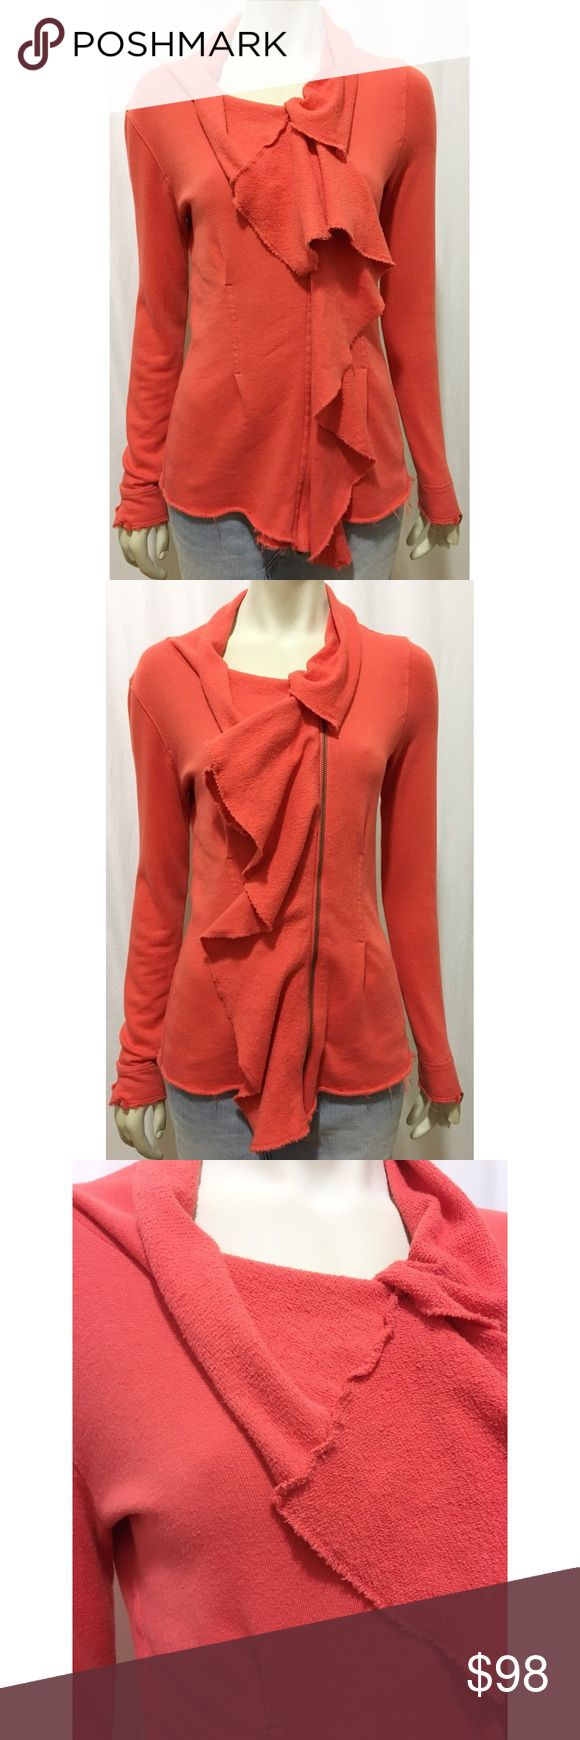 """We The Free Small Orange Pacific Coast Ruffle Coat Good used condition orange sweater jacket from We The Free by Free People. Size small. Asymmetrical concealed zipper with ruffle front, faux front pockets, pleated back, raw edges and rolled hem. Some pilling and a small hole behind the zipper - hole is not visible when item is on. 100% cotton. All measurements are approximate taken while garment is flat: length 25.5"""", bust 16.5"""", armpit to wrist 20"""". Free People Sweaters"""